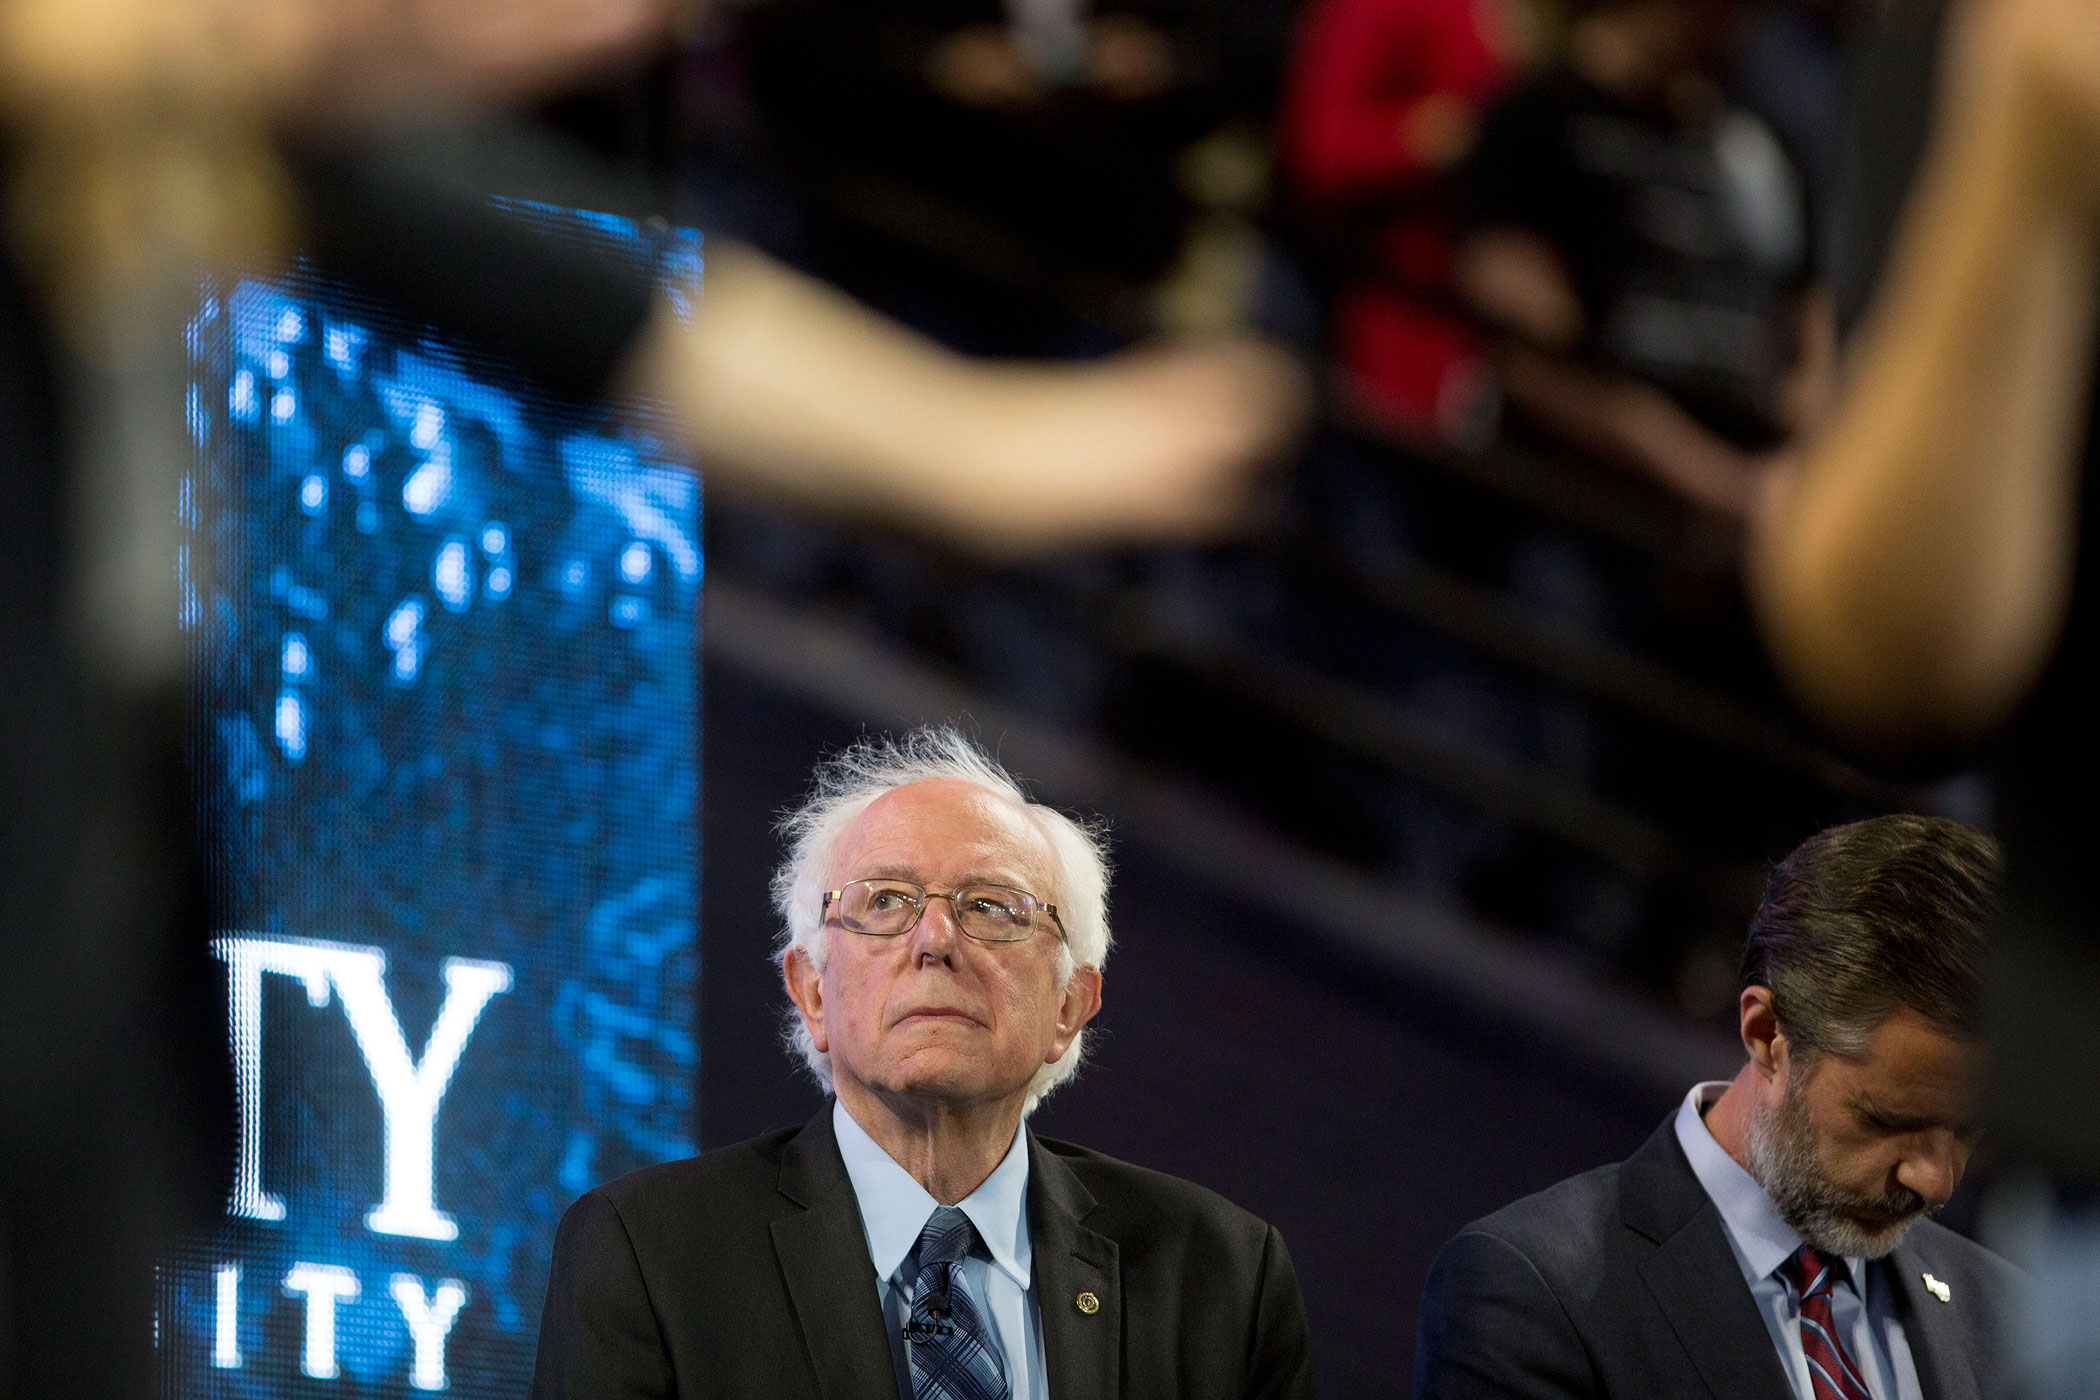 Senator Bernie Sanders, an independent from Vermont and 2016 Democratic presidential candidate, left, and Jerry Falwell Jr., president of Liberty University, listen to a prayer during a Liberty University Convocation in Lynchburg, Virginia, on Sept. 14, 2015.